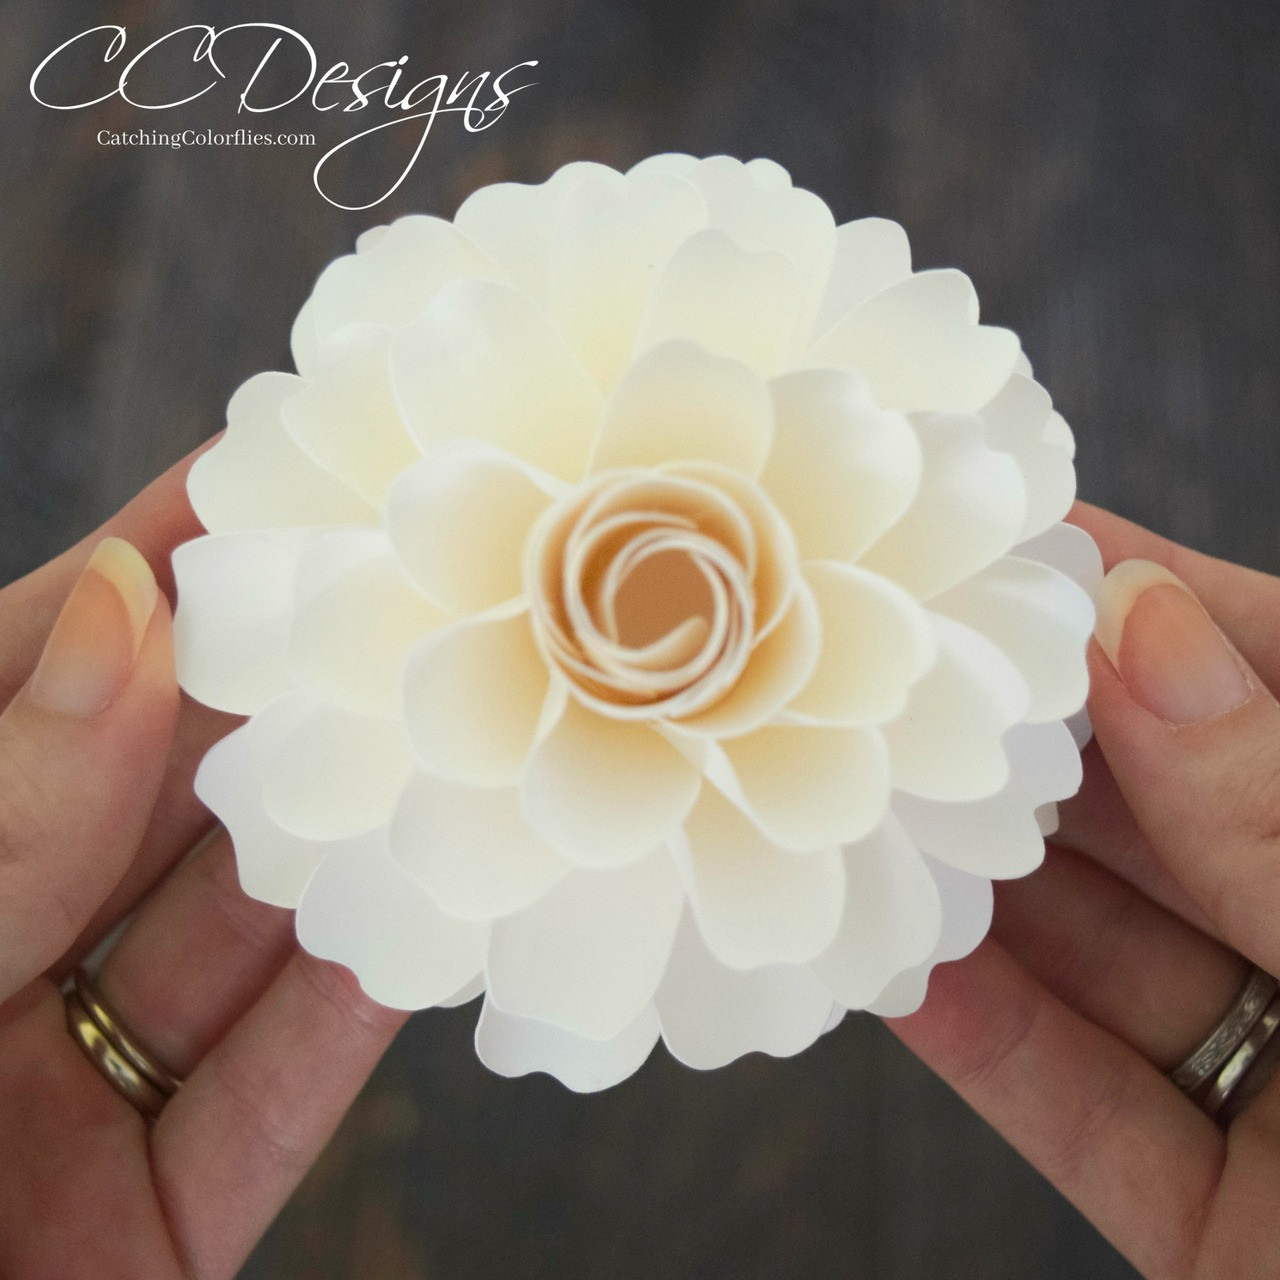 Dahlia paper flower templates catching colorlfies mightylinksfo